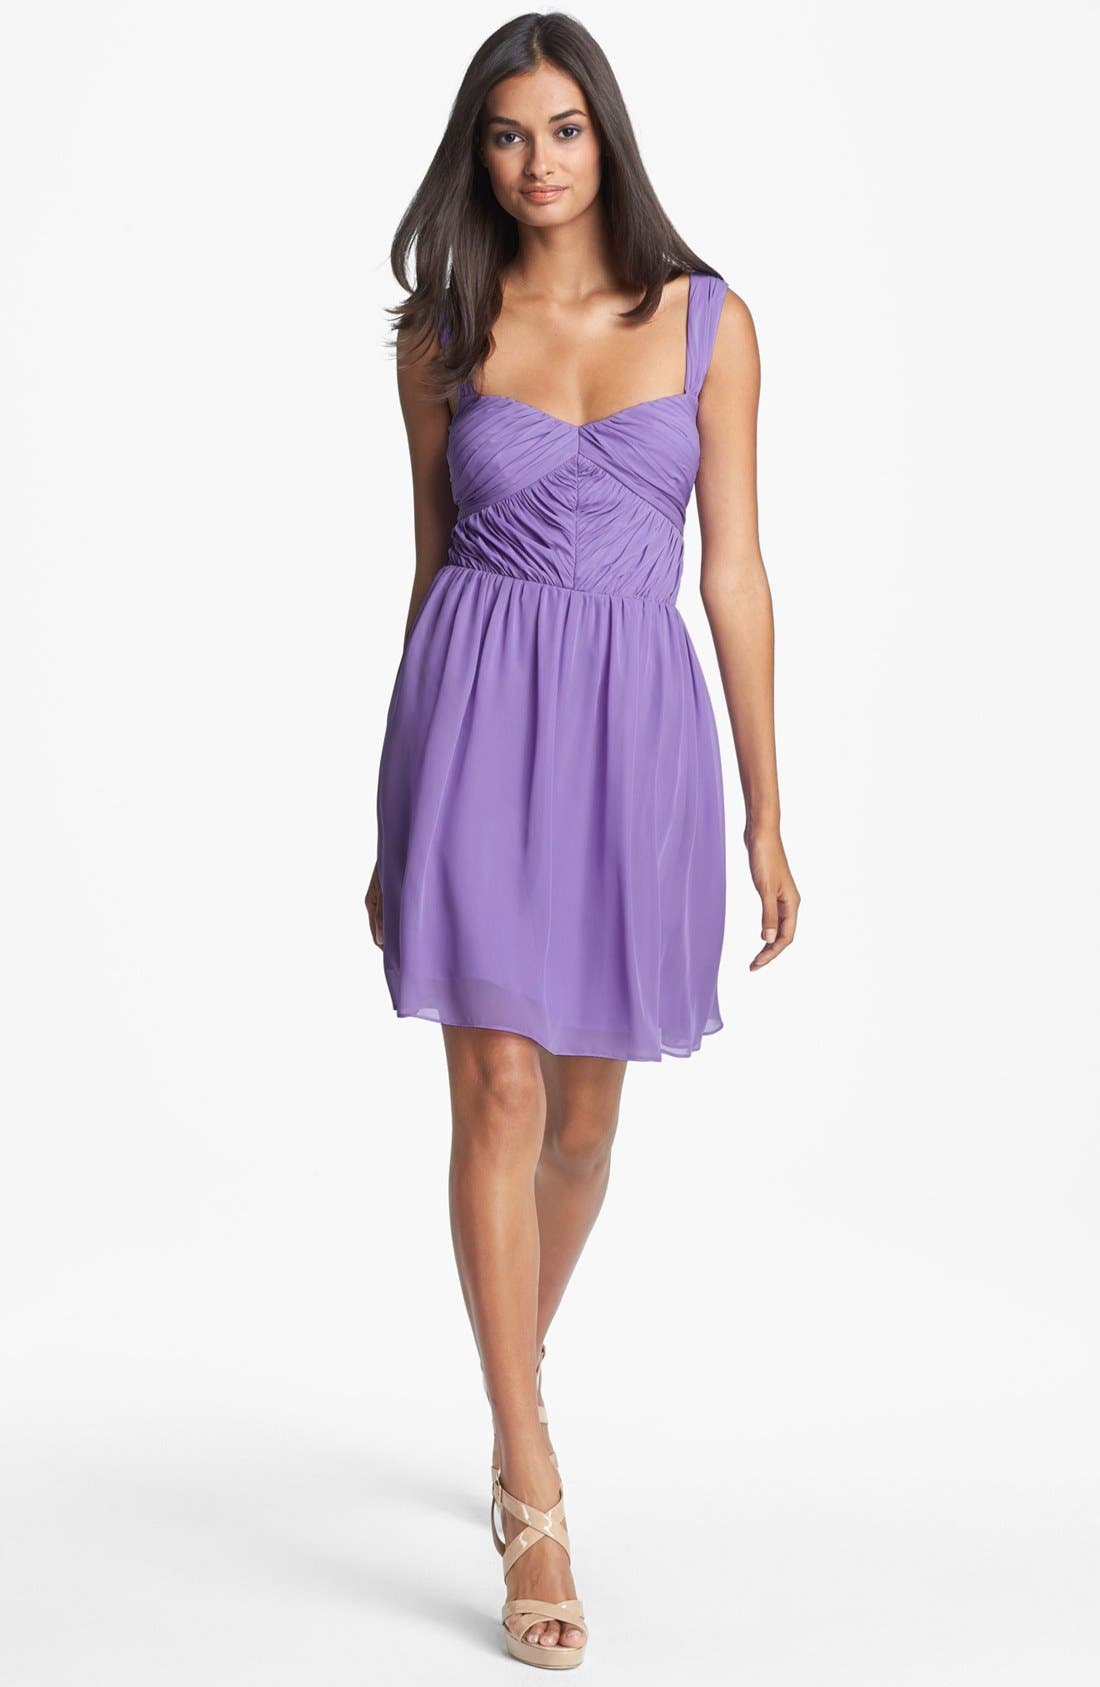 Main Image - Hailey by Adrianna Papell Sweetheart Fit & Flare Dress